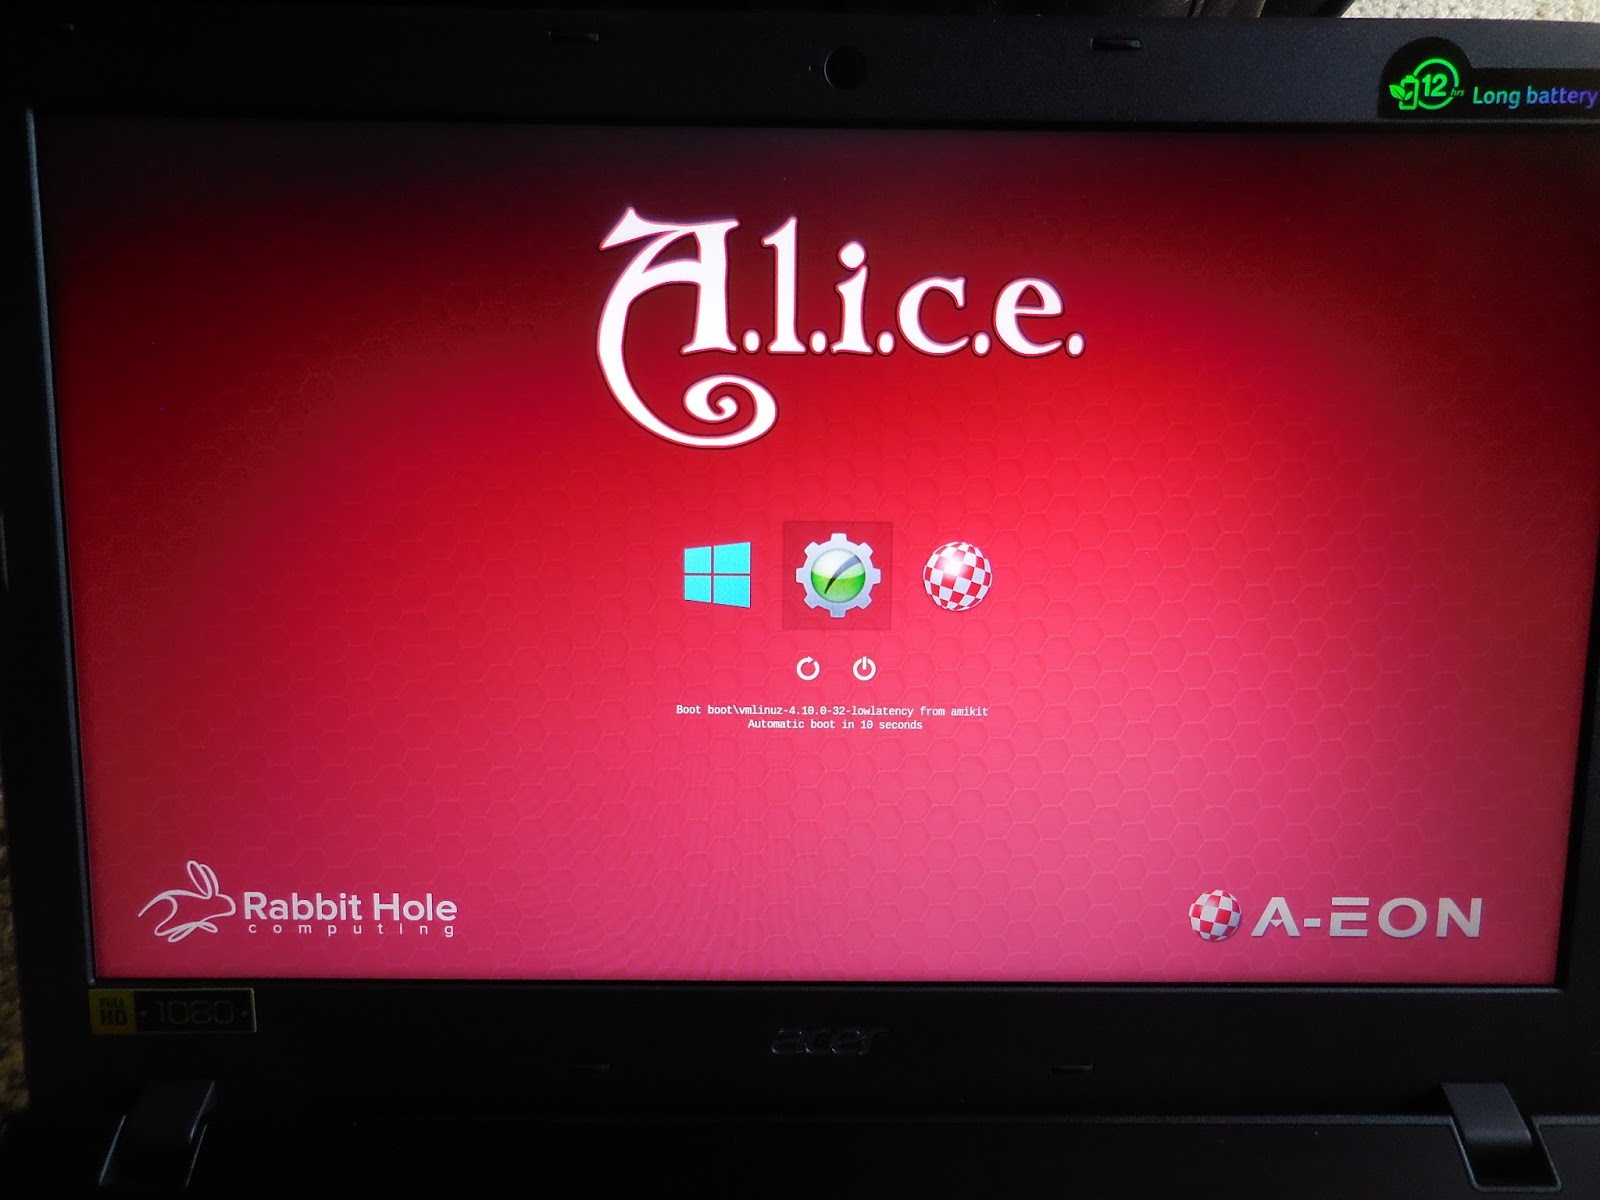 retro-link: Unboxing A L I C E  (A Laptop Incorporating a Classic